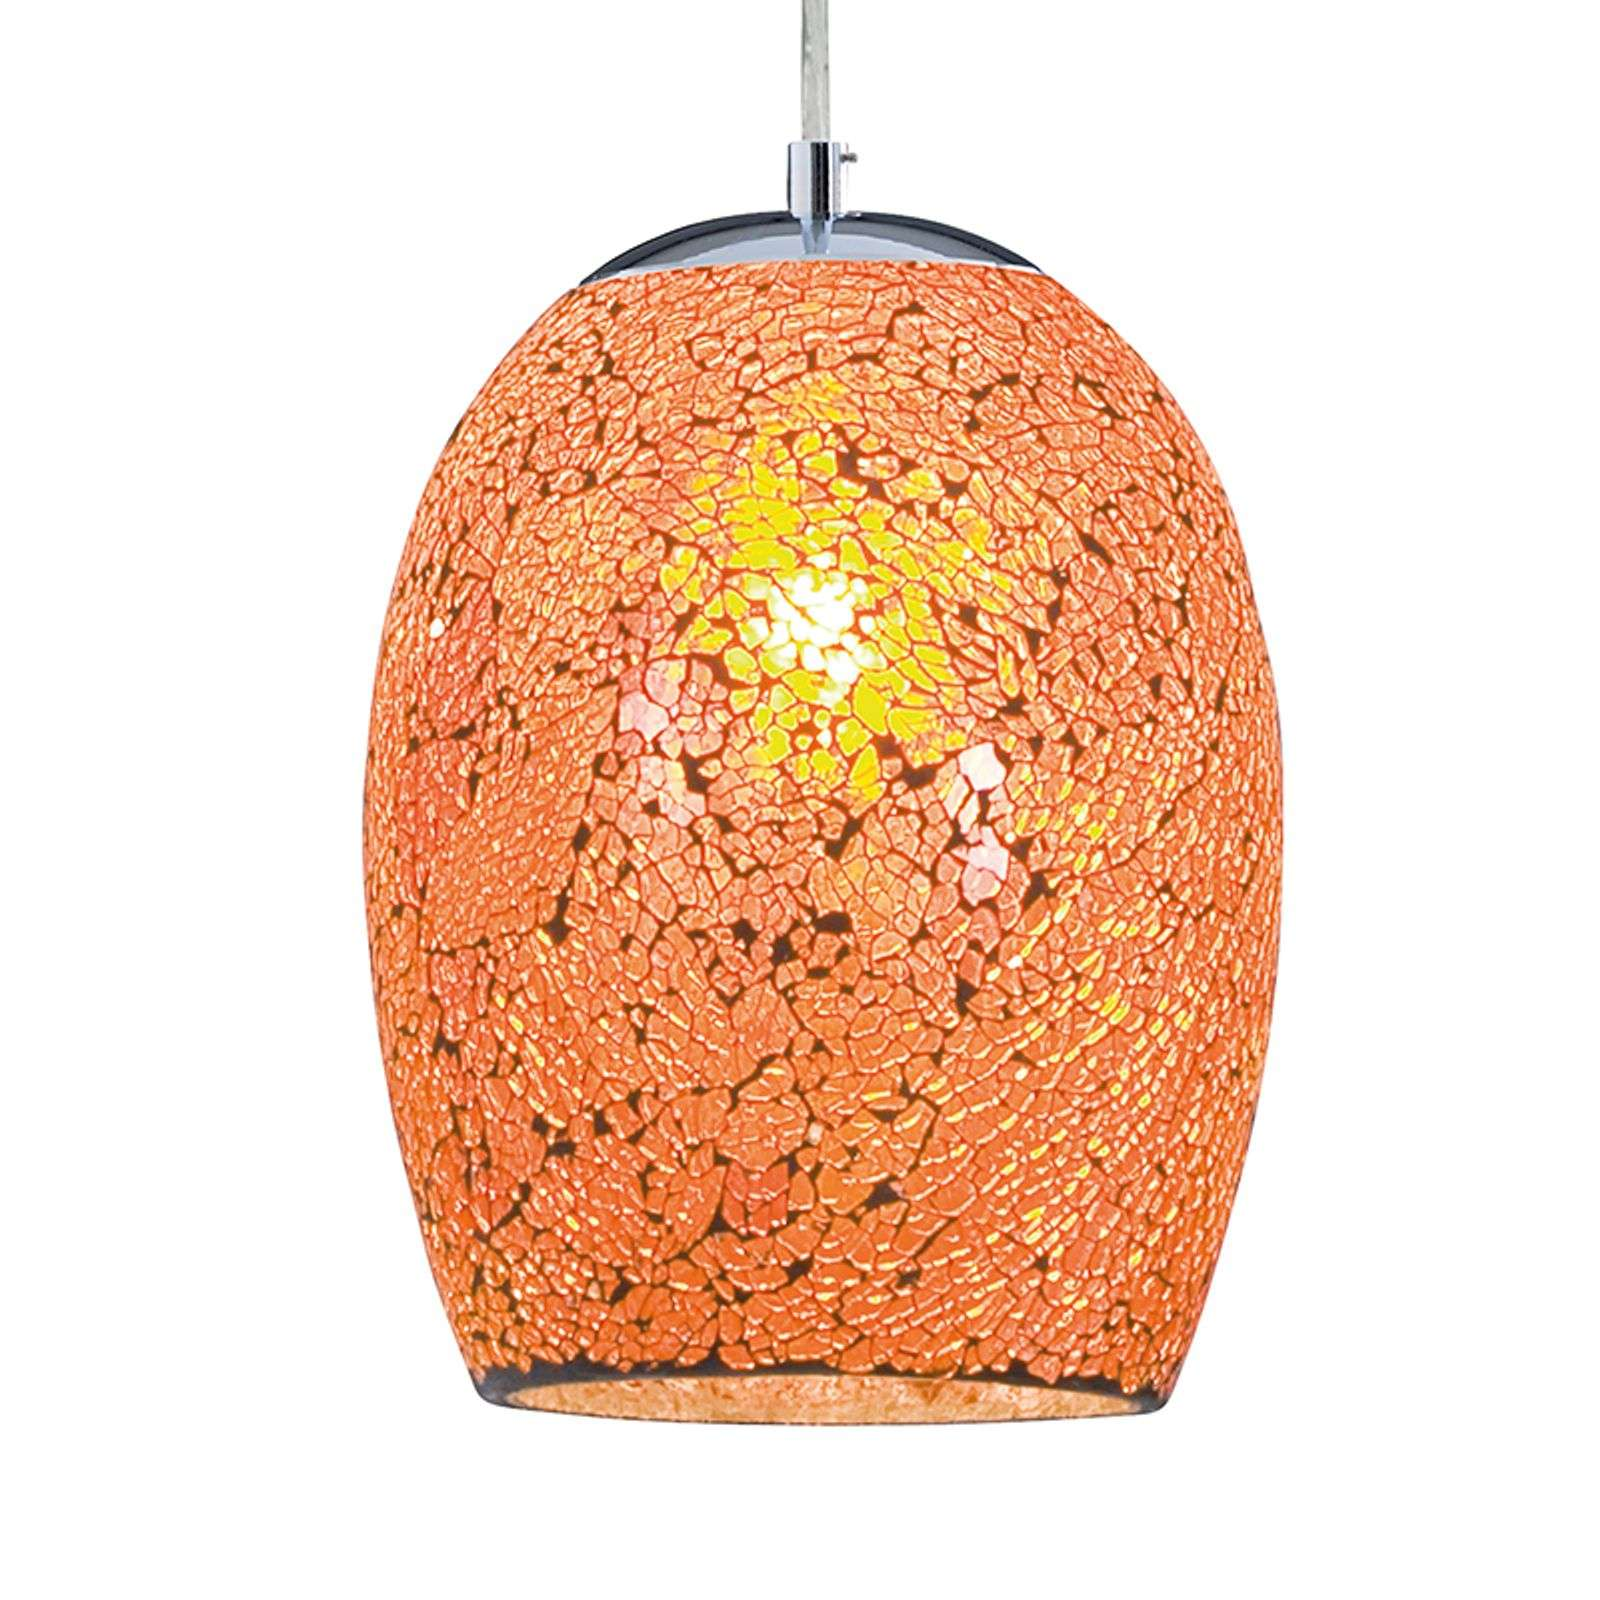 Hanglamp Crackle in oranje chroom